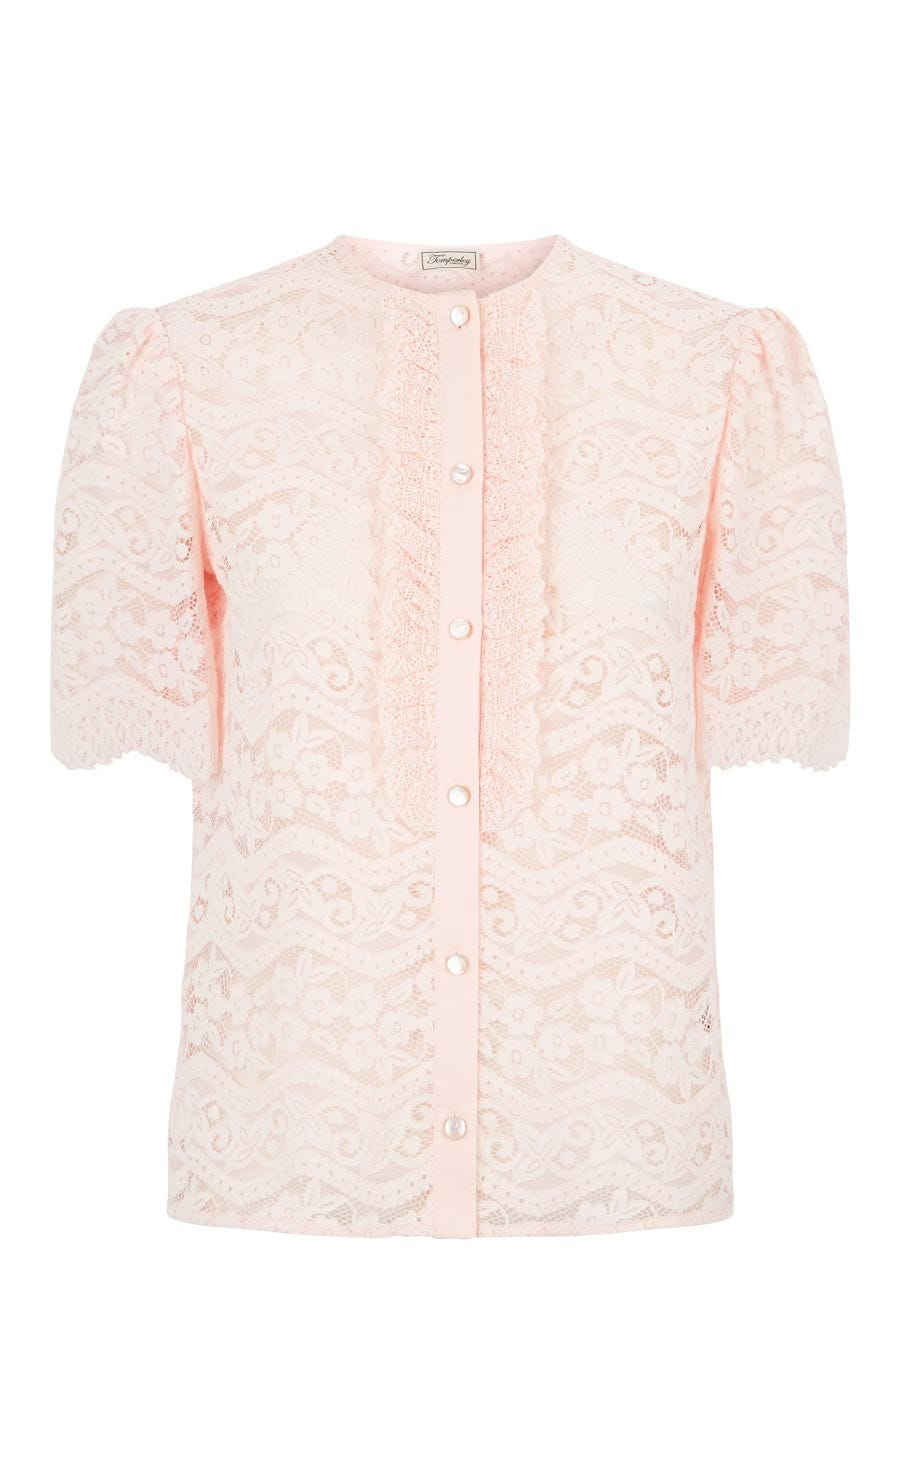 Lunar Lace Top, Shell